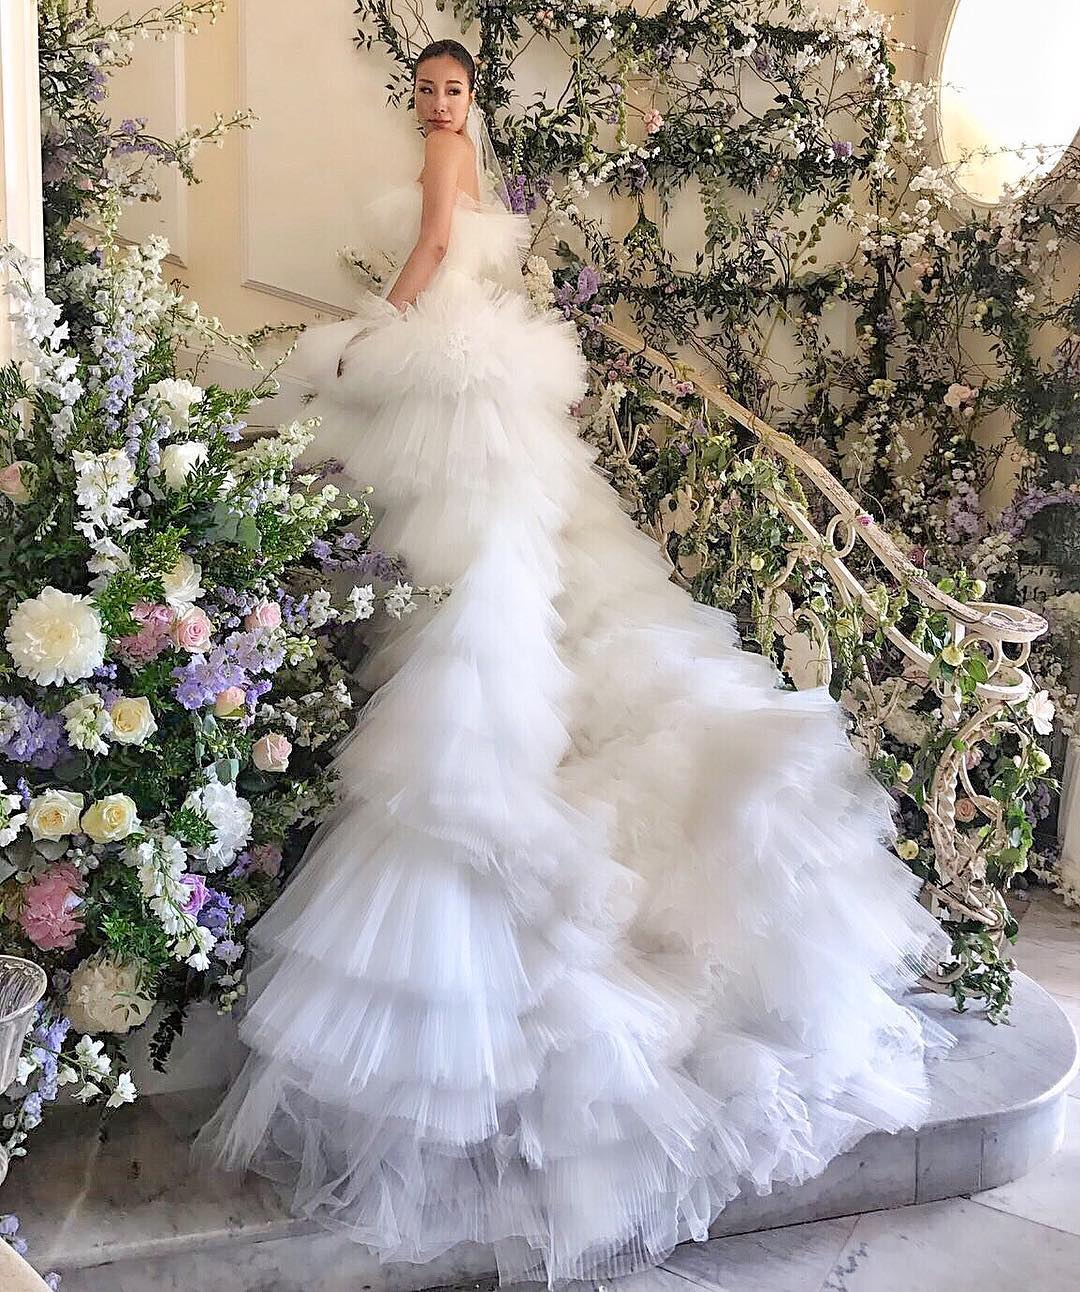 Feiping Chang in the  Giambattista Valli Couture wedding dress